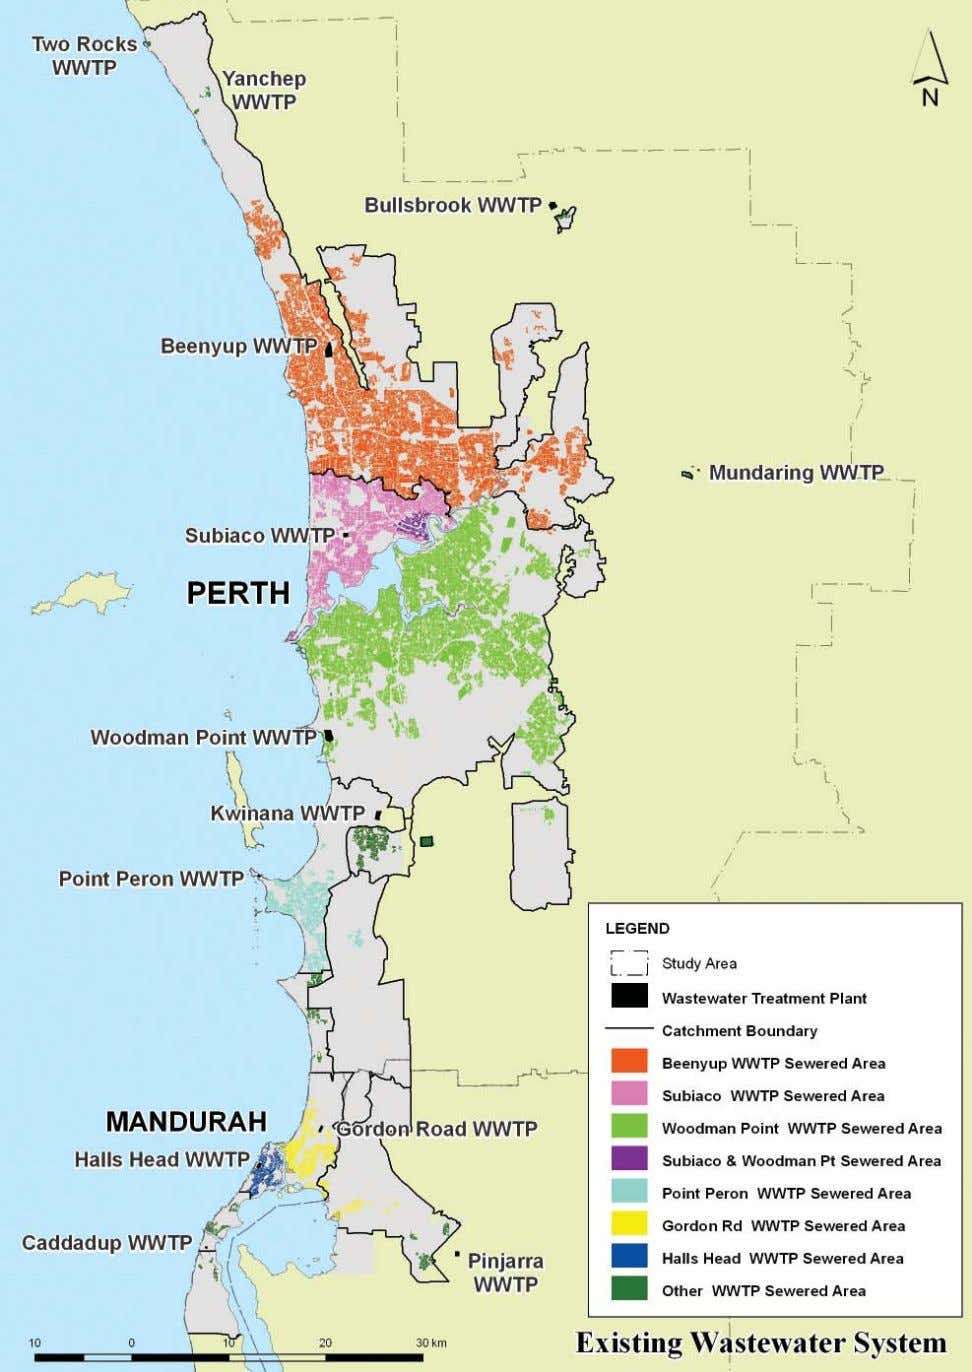 AREAS SERVICED BY PERTH - MANDURAH WASTEWATER TREATMENT PLANTS OPTIONS FOR OUR WATER FUTURE